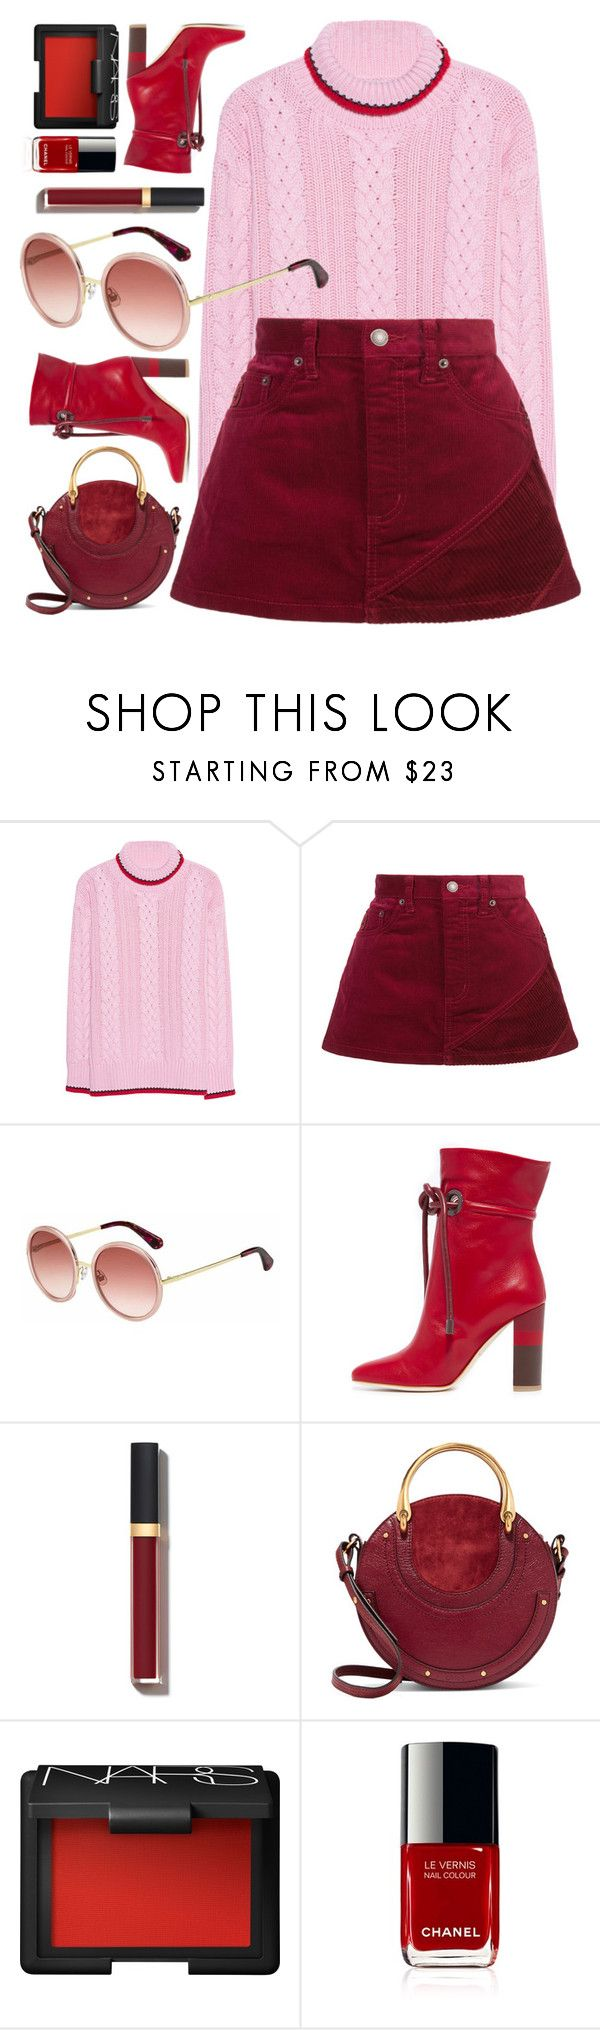 """Girly Look"" by smartbuyglasses-uk ❤ liked on Polyvore featuring Marc Jacobs, Kate Spade, Malone Souliers, Chanel, Chloé, NARS Cosmetics, Pink and red"